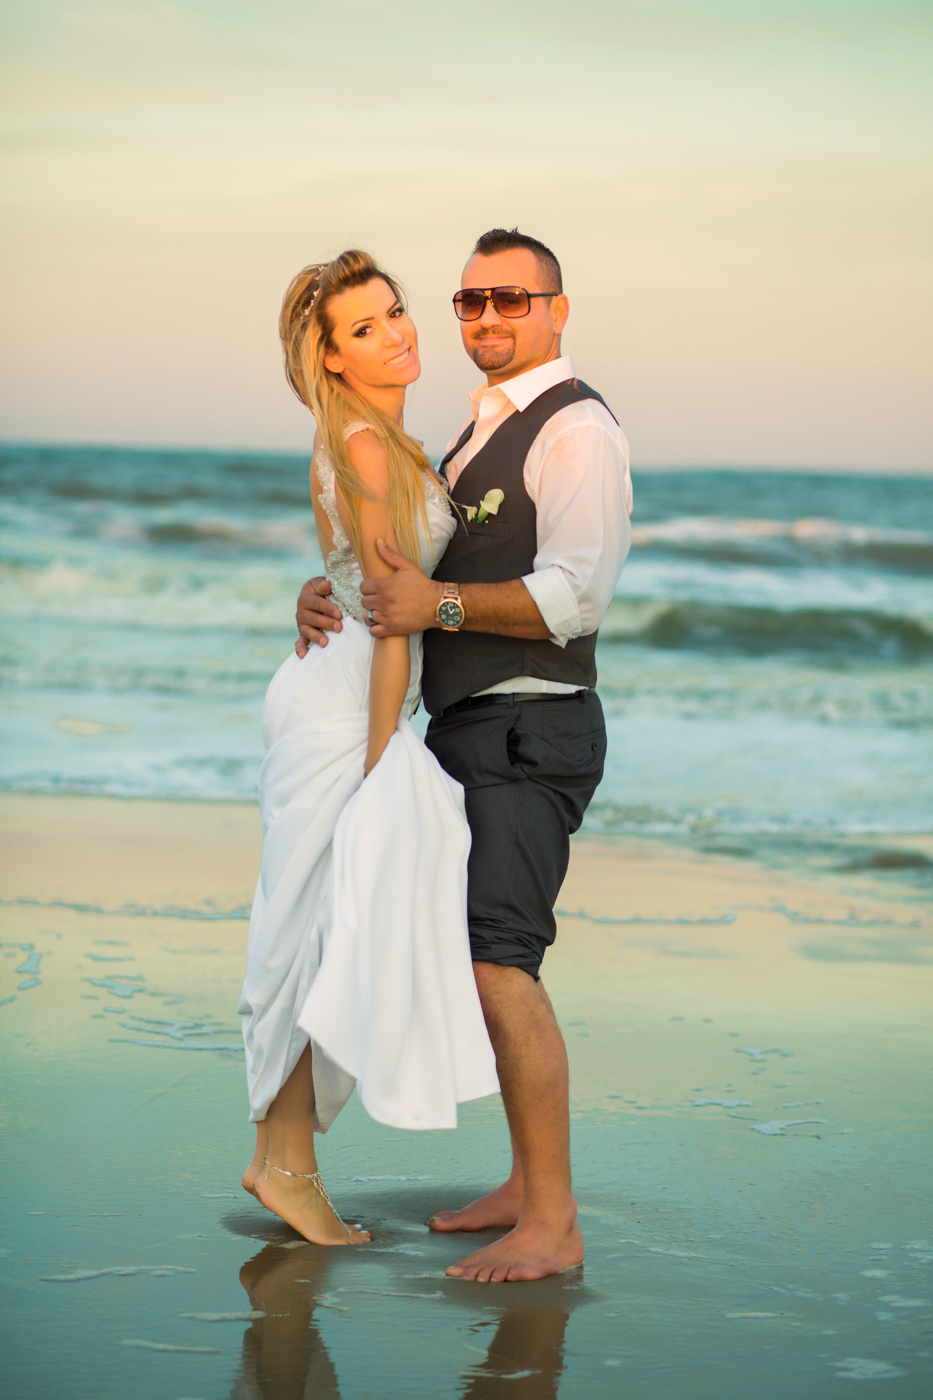 Beautiful Brazilian Beach Wedding North Carolina-Ksenia-Pro-Photography-56